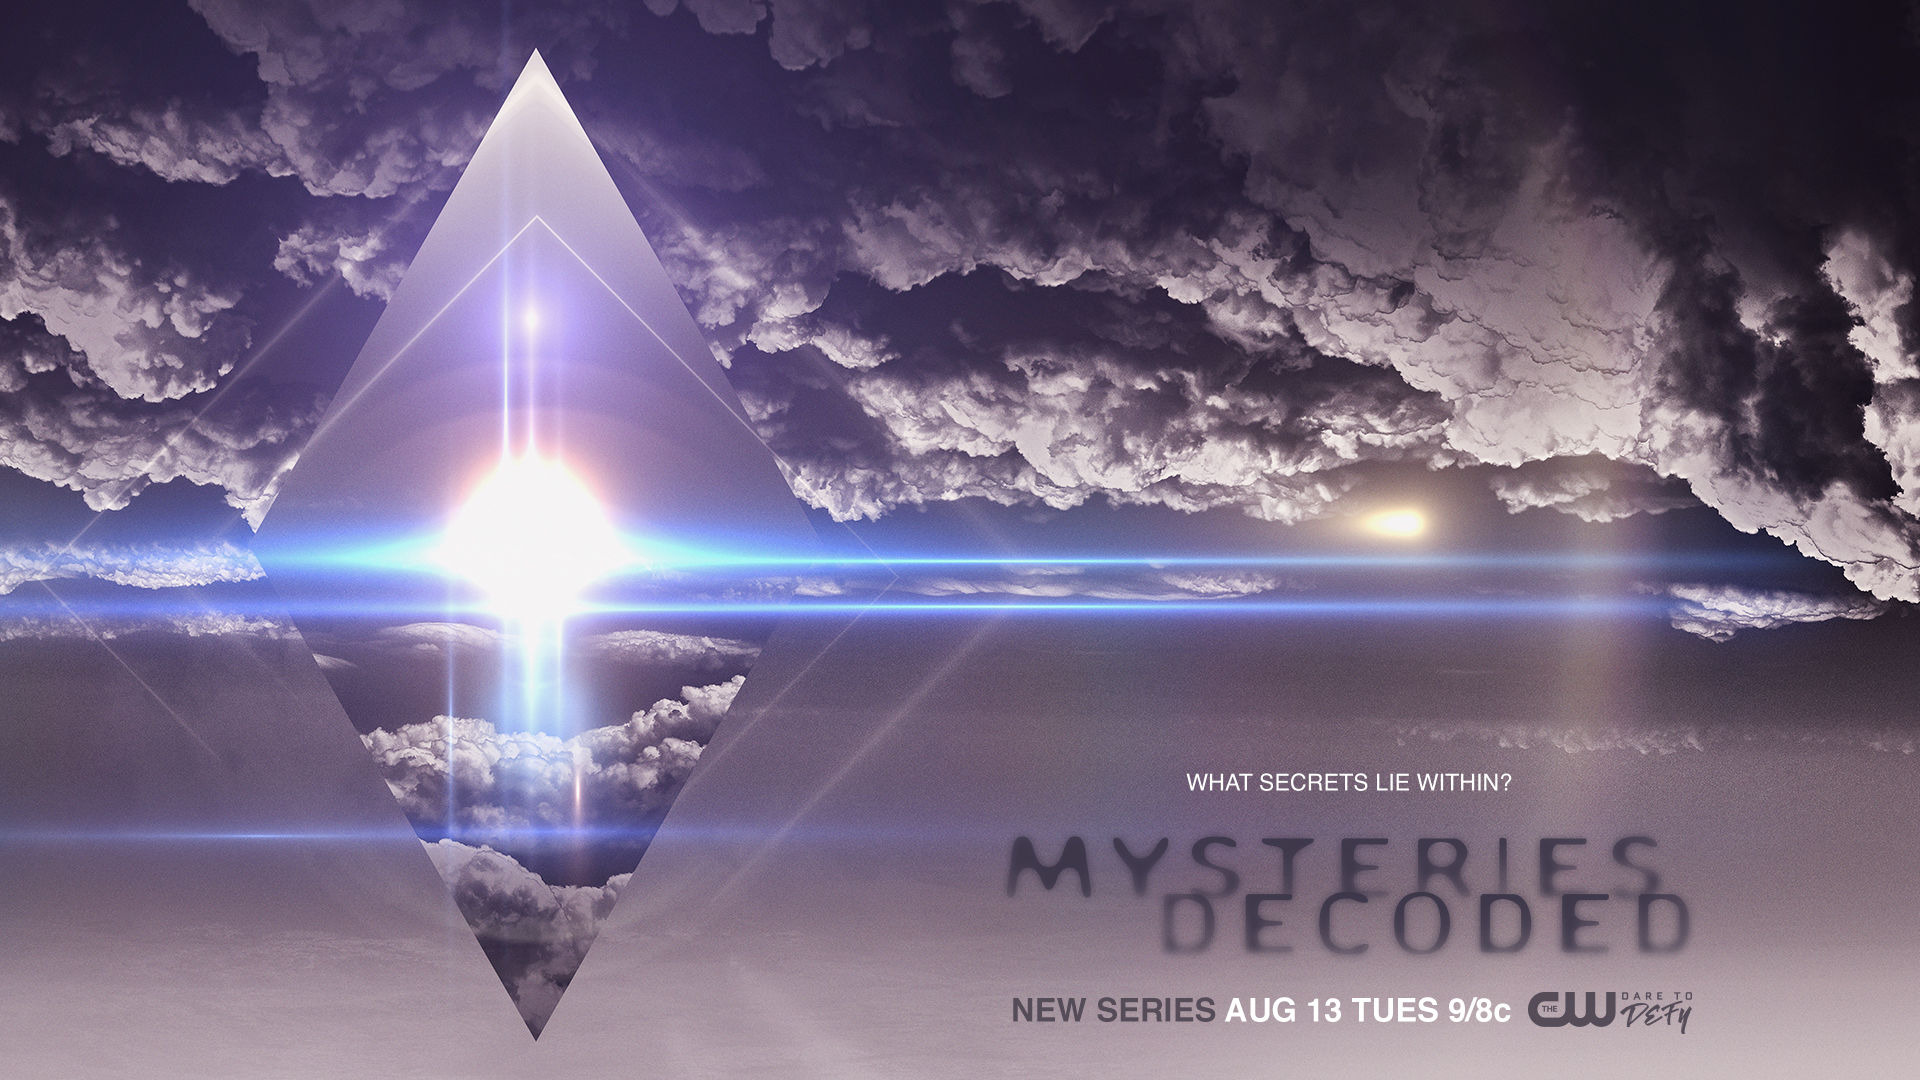 Show Mysteries Decoded